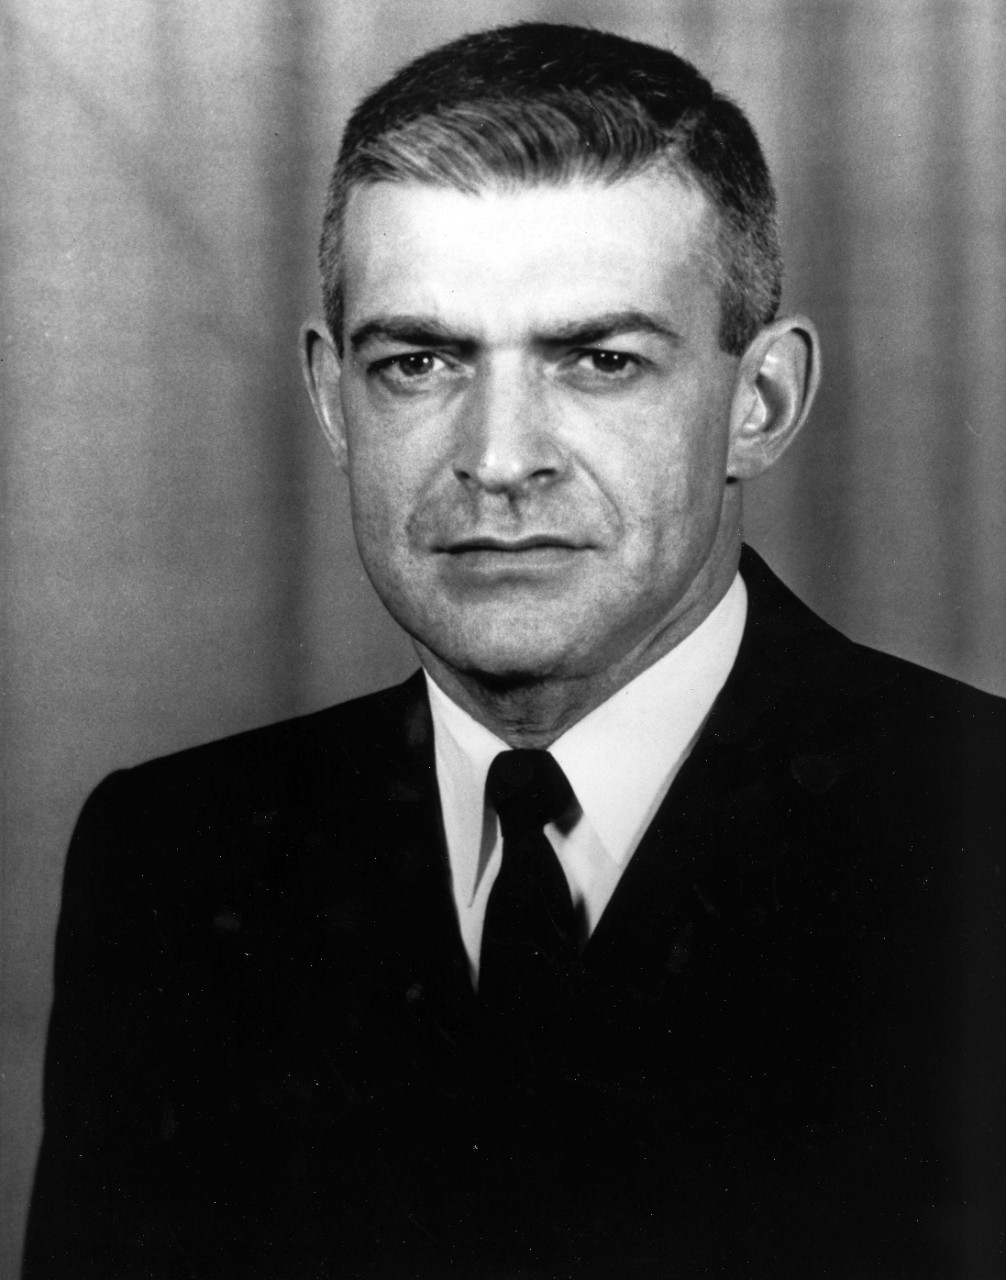 Lt. Vincent R. Capodanno, USNR, 16 February 1966. (U.S. Navy Photograph L38-12.12.01, Naval History and Heritage Command)